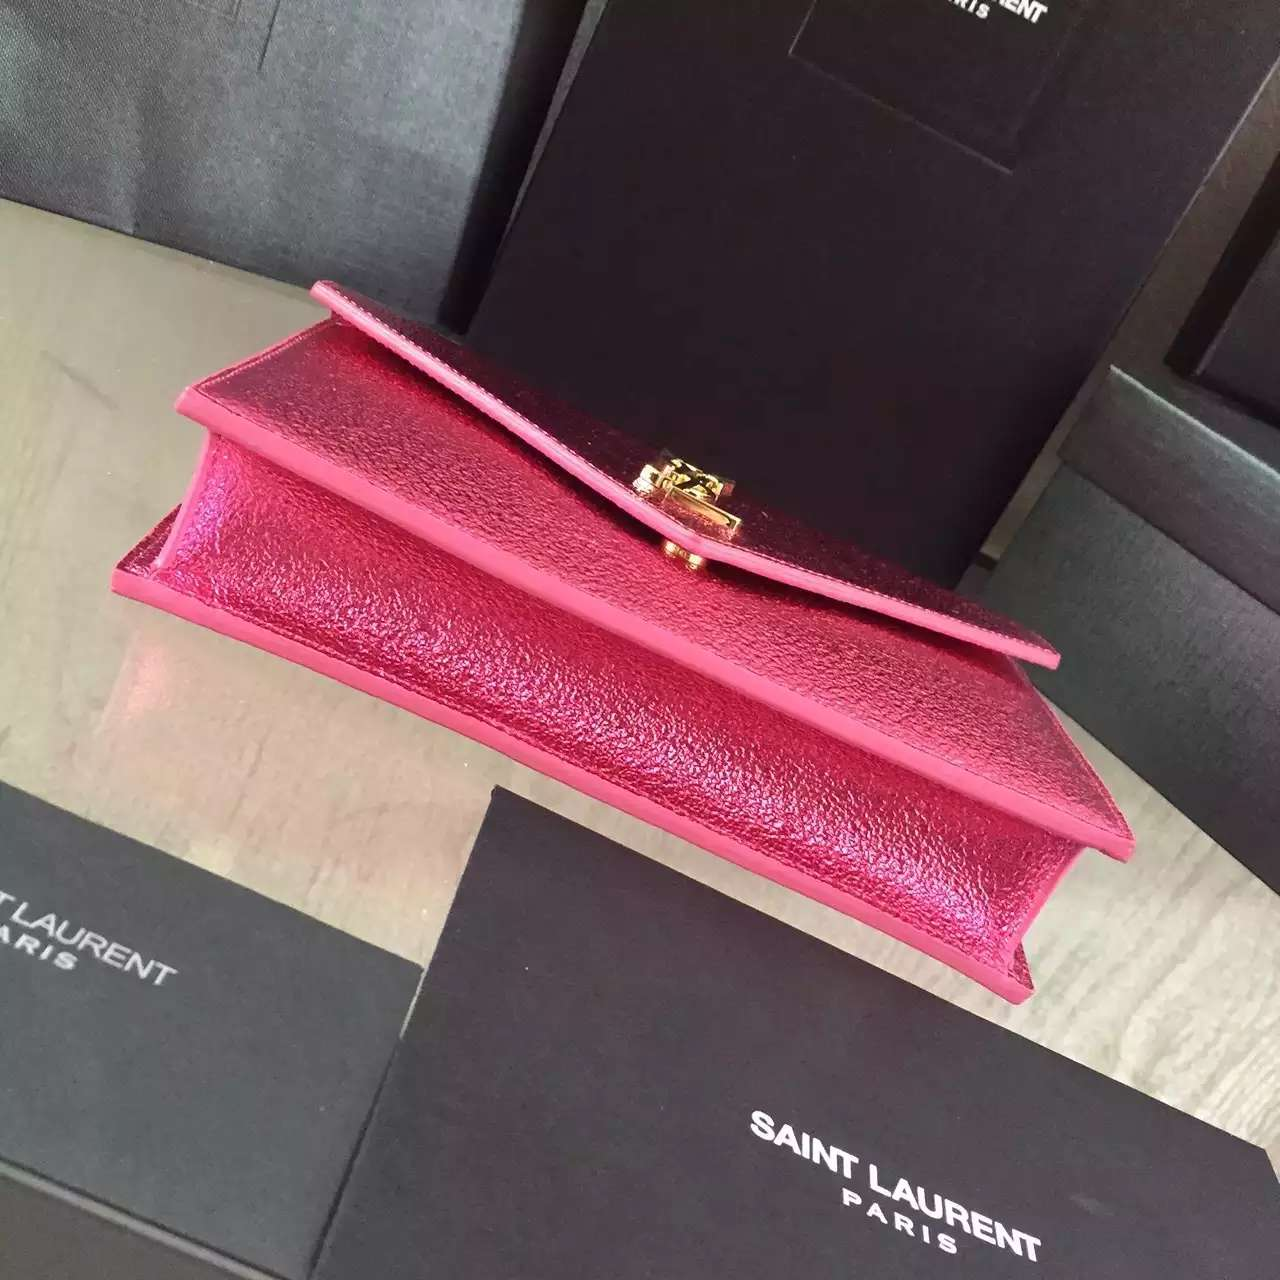 2016 Cheap YSL Out Sale with Free Shipping-Saint Laurent Monogram Envelope Chain Wallet in Lipstick Fuchsia Grain Leather